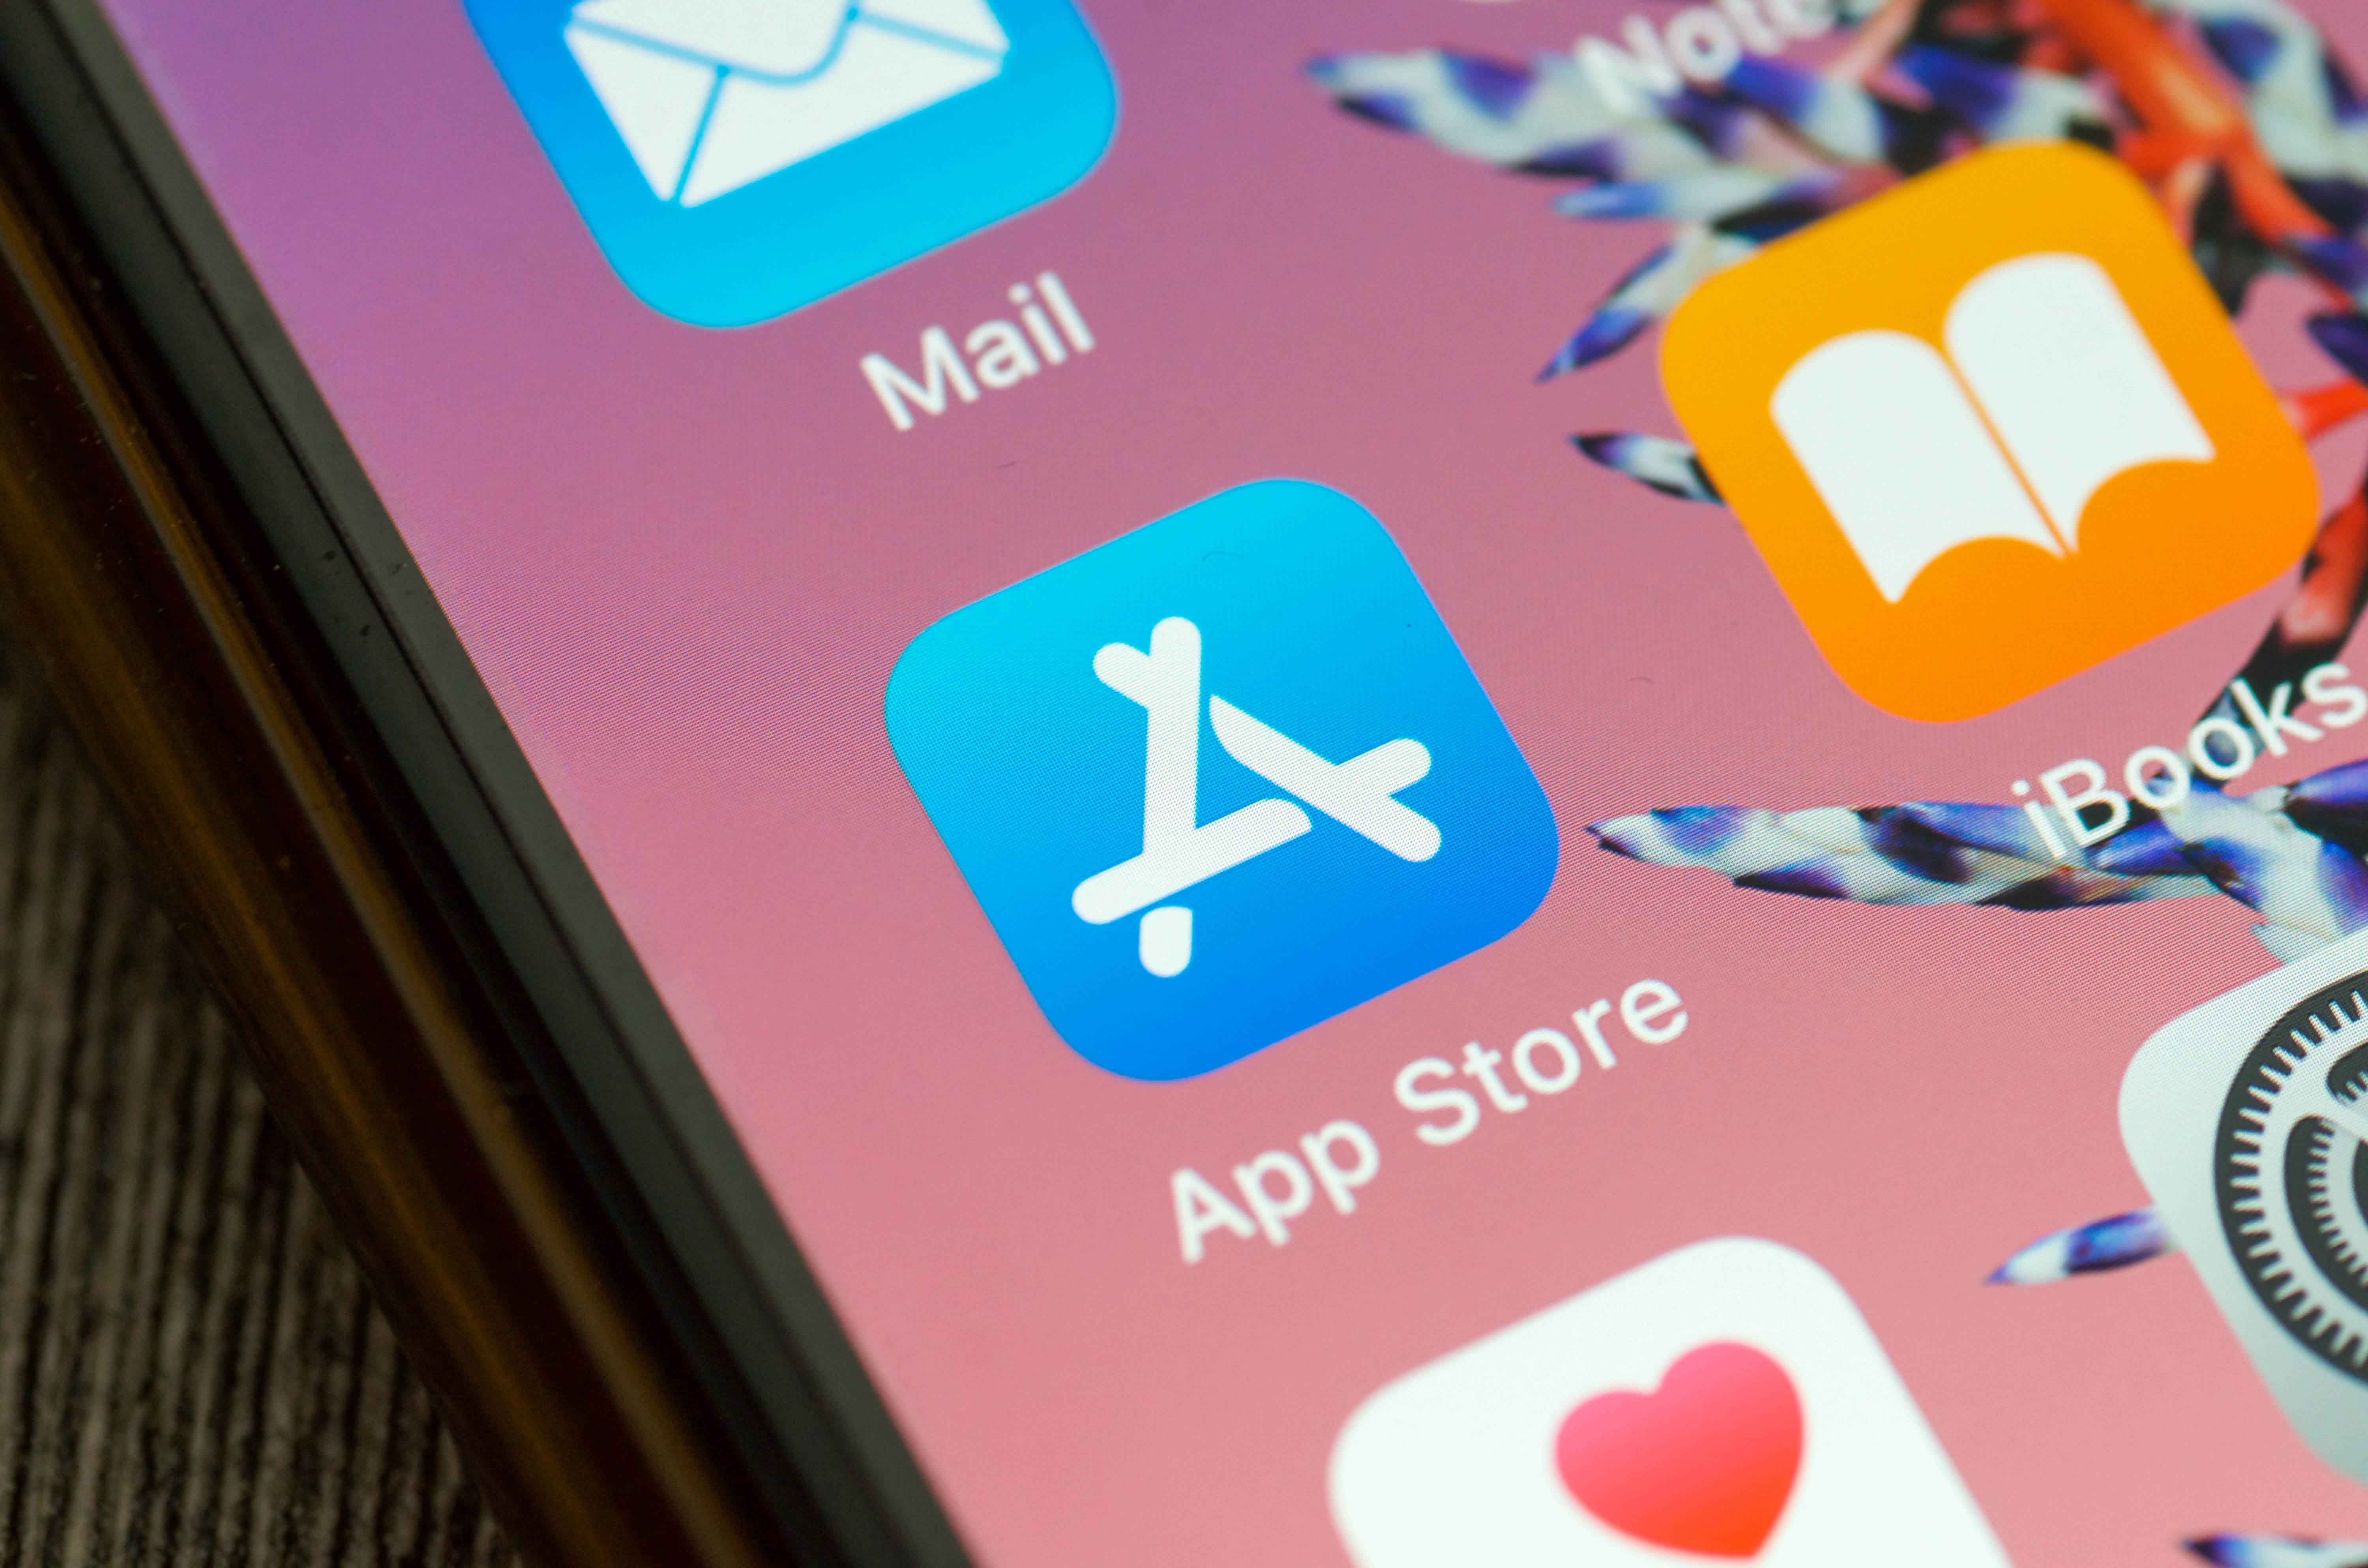 iPhone users take Apple to court over app store